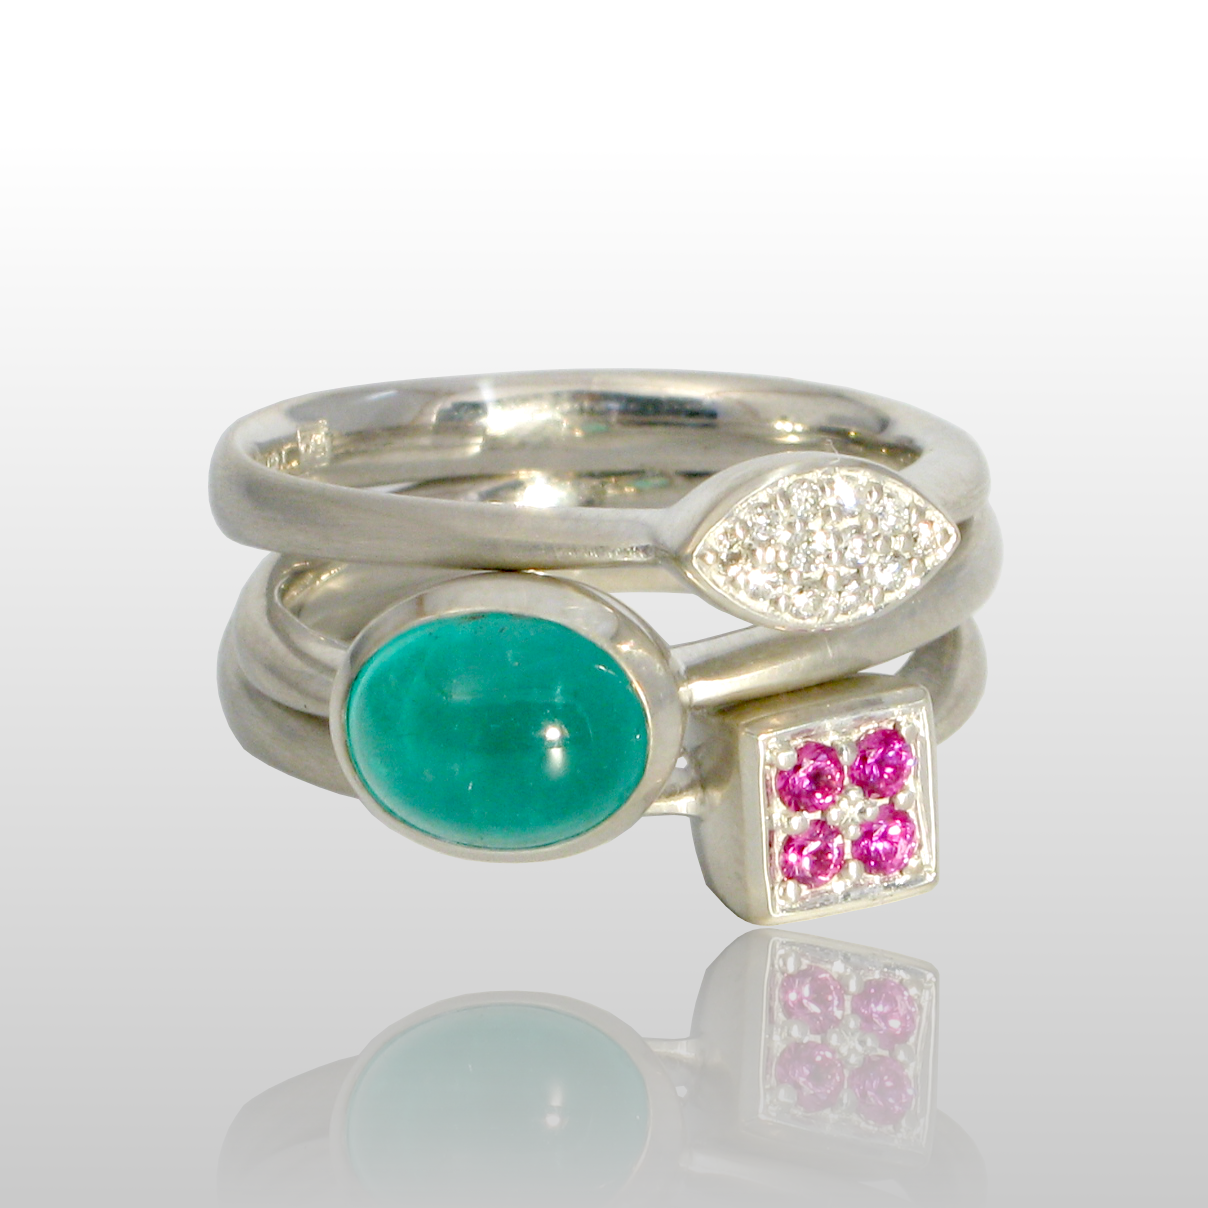 Stackable designer rings in 18k white gold 'Stax' with diamond pavé, emerald and pink sapphire pavé by Pratima Design Fine Art Jewelry